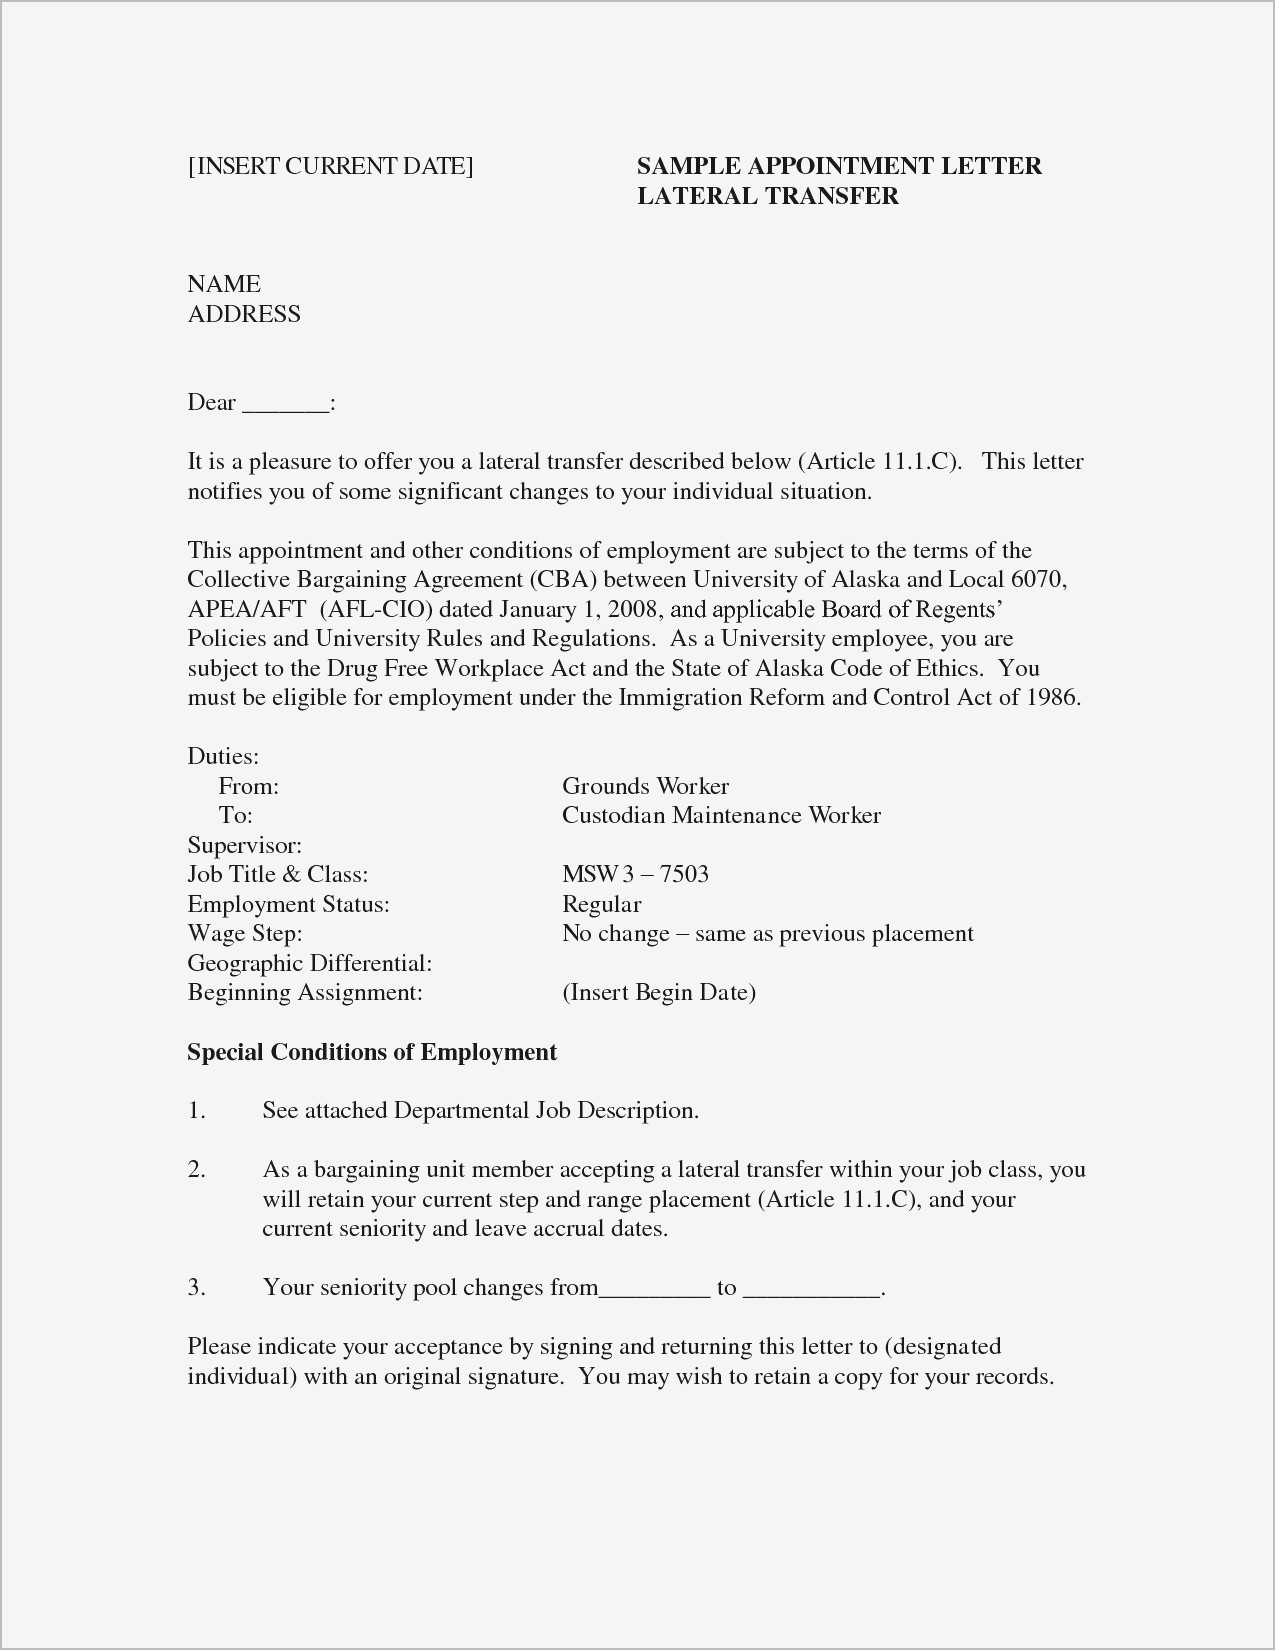 Bond Claim Letter Template - Archaicawful Business Letter Invoice